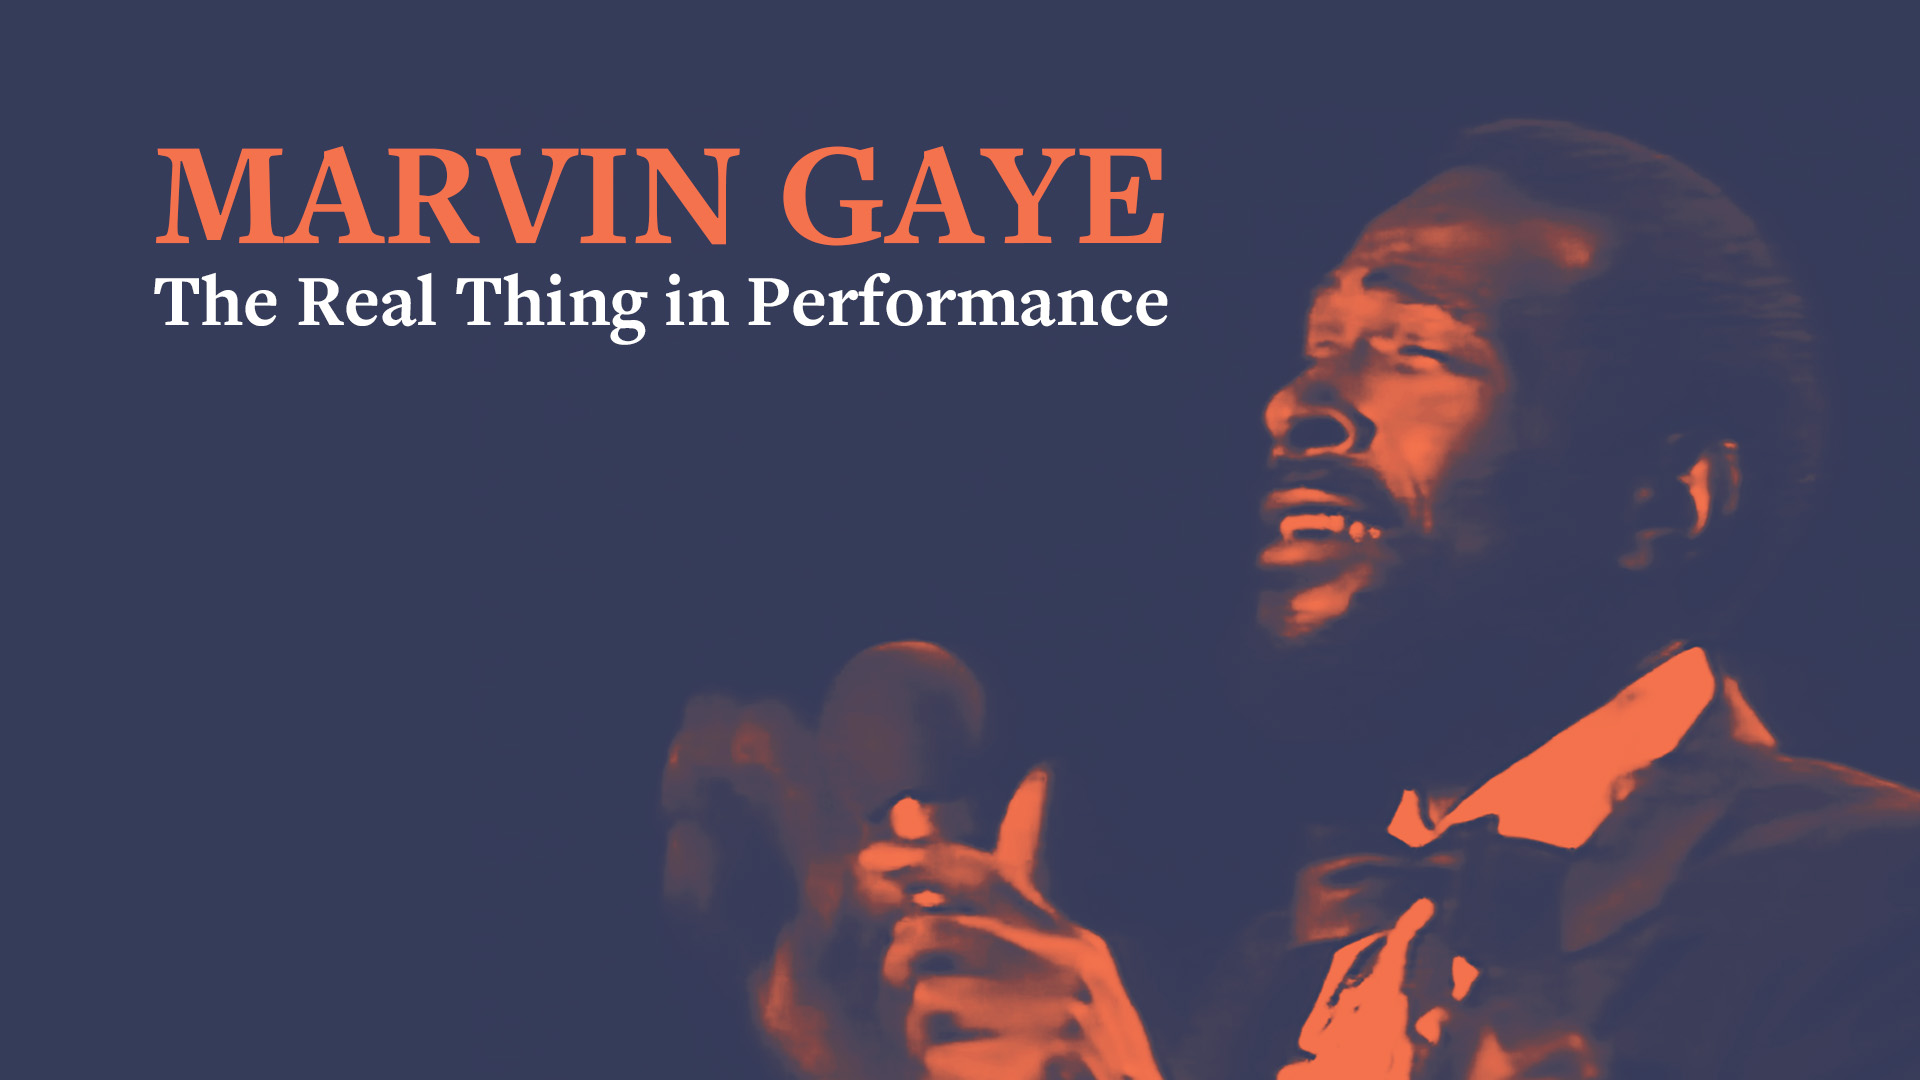 Marvin Gaye - The Real Thing In Performance